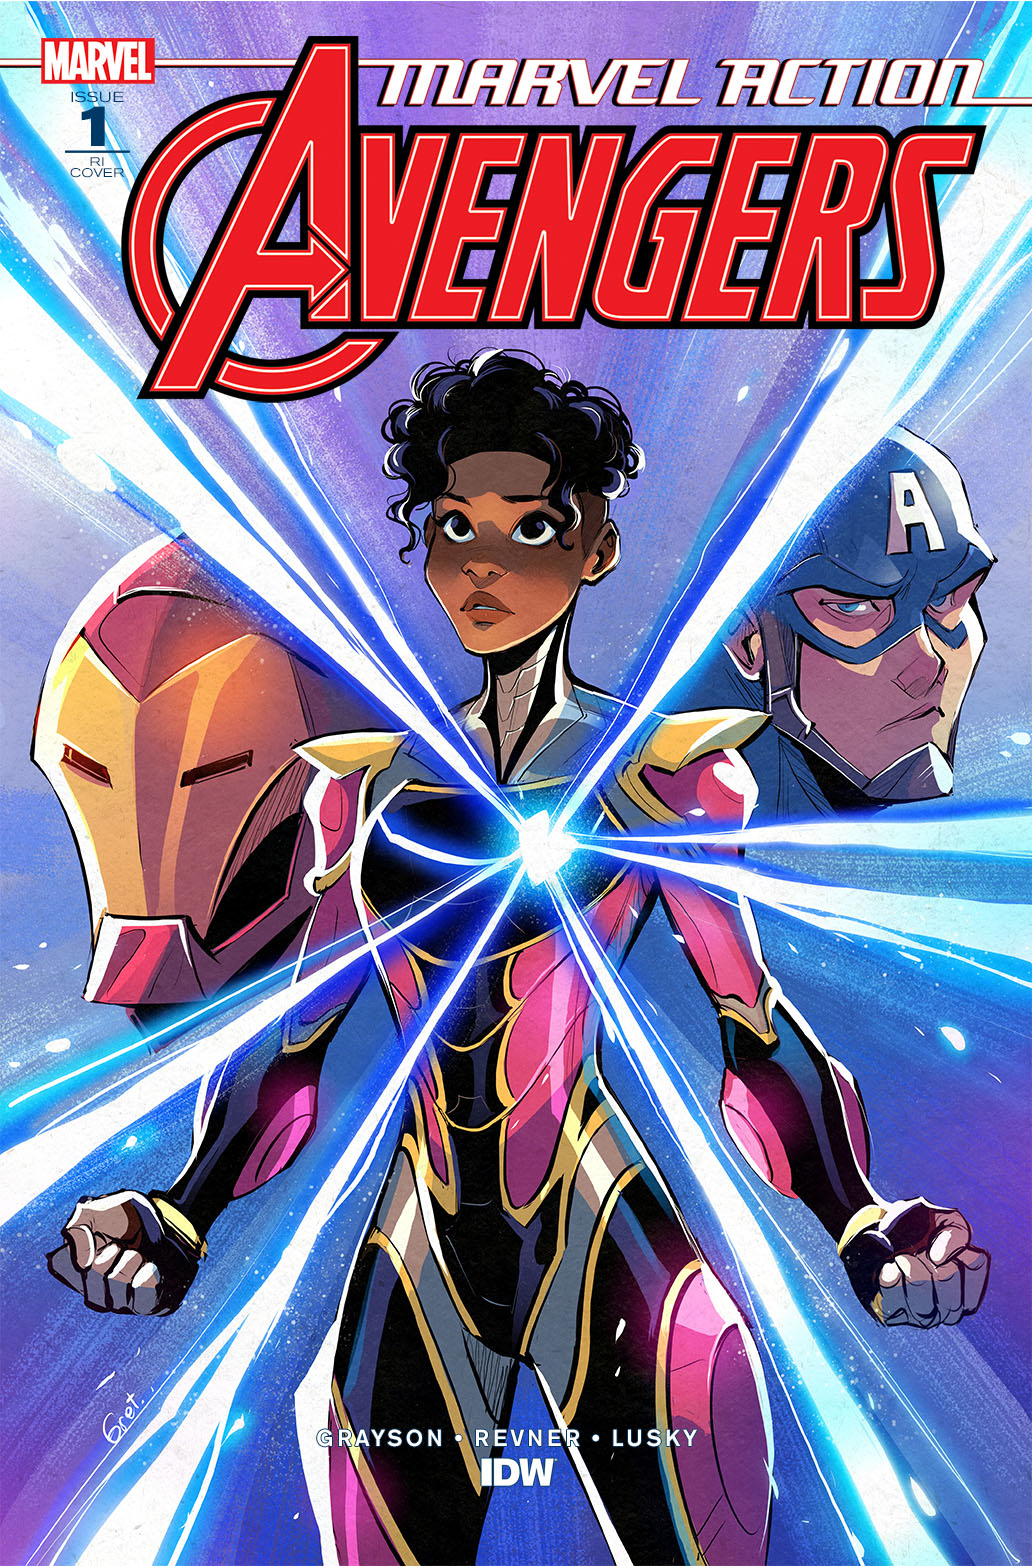 Marvel_Avengers01_coverRI-copy IDW Publishing June 2021 Solicitations